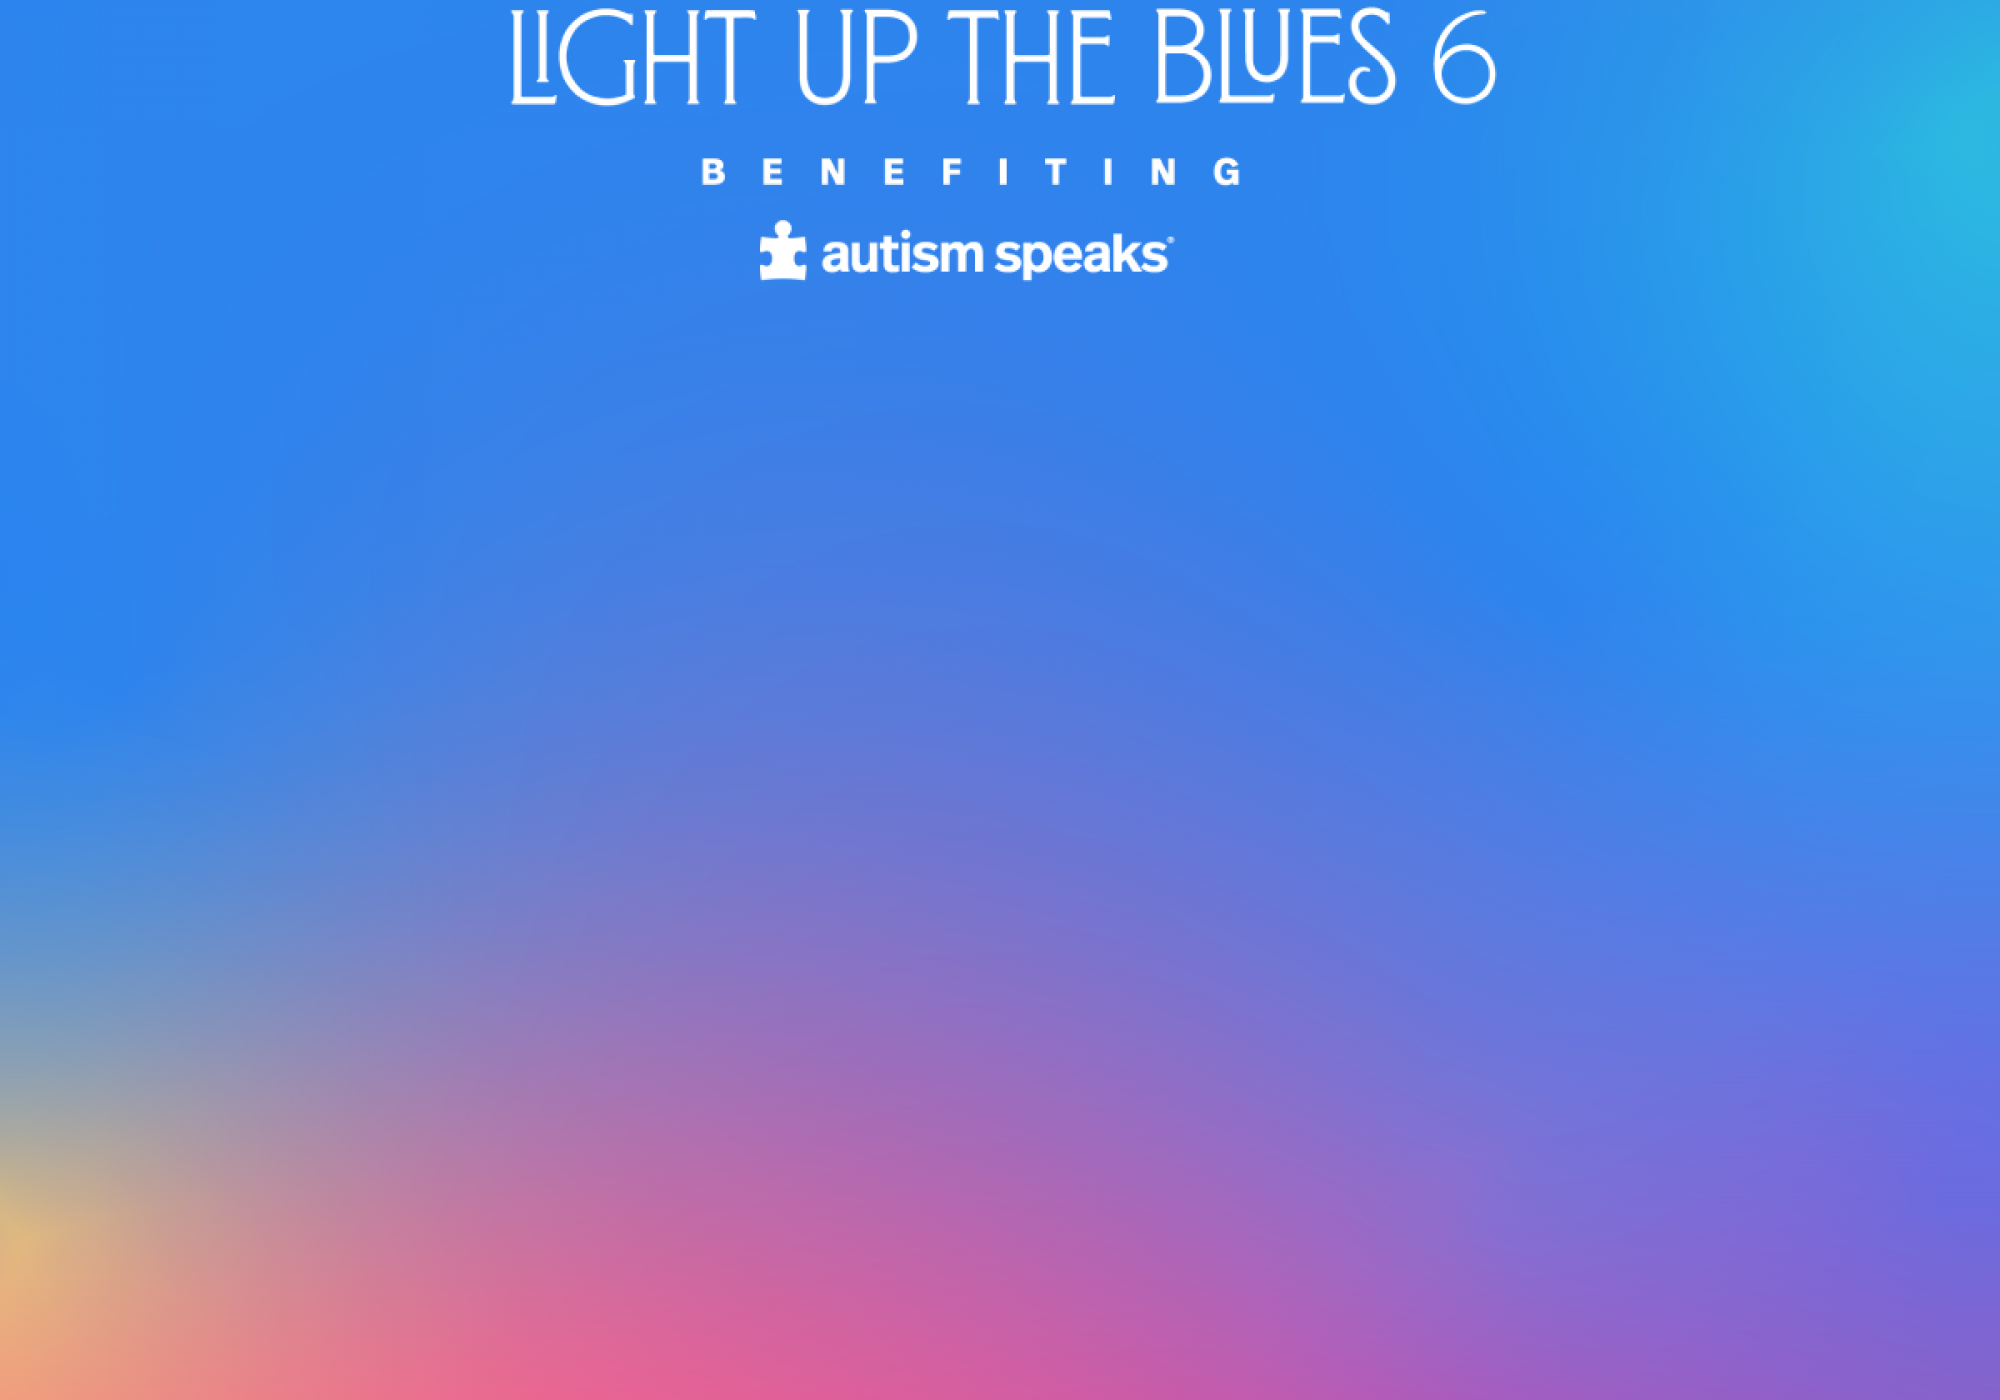 Light Up The Blues benefiting Autism Speaks